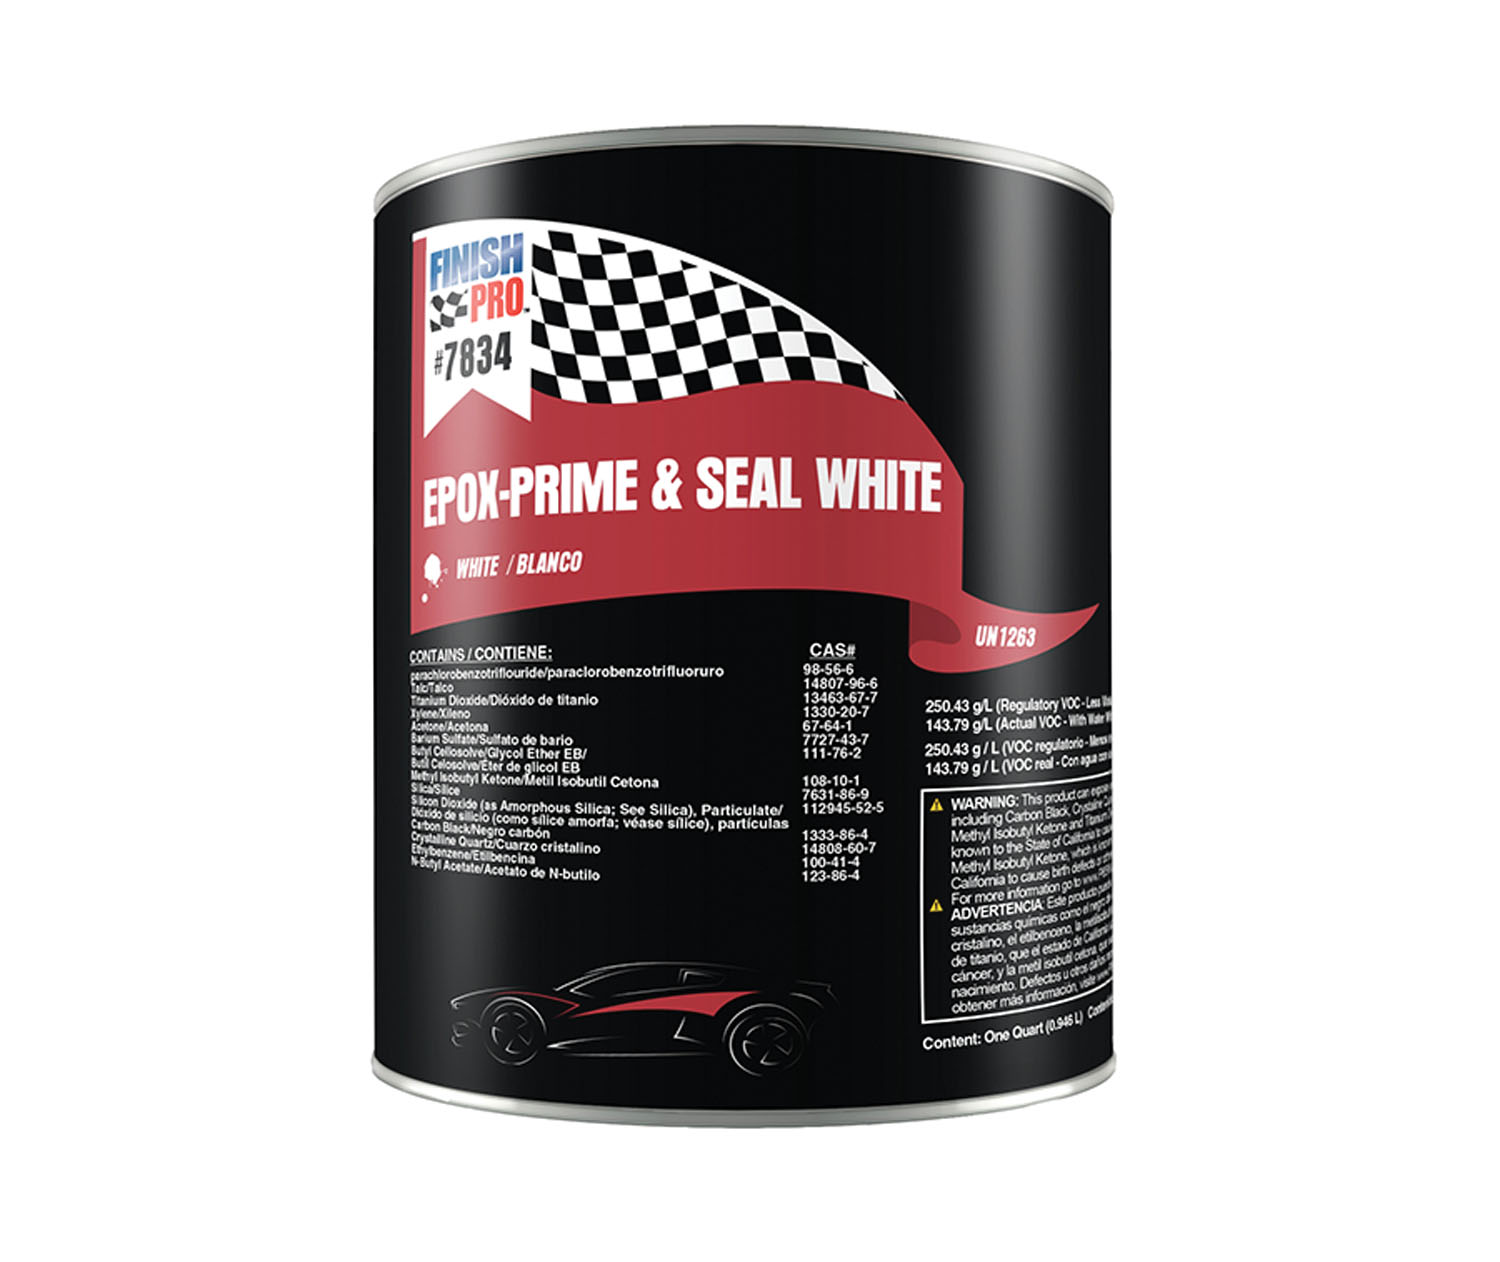 Finish Pro EPOX-PRIME & SEAL WHITE QT